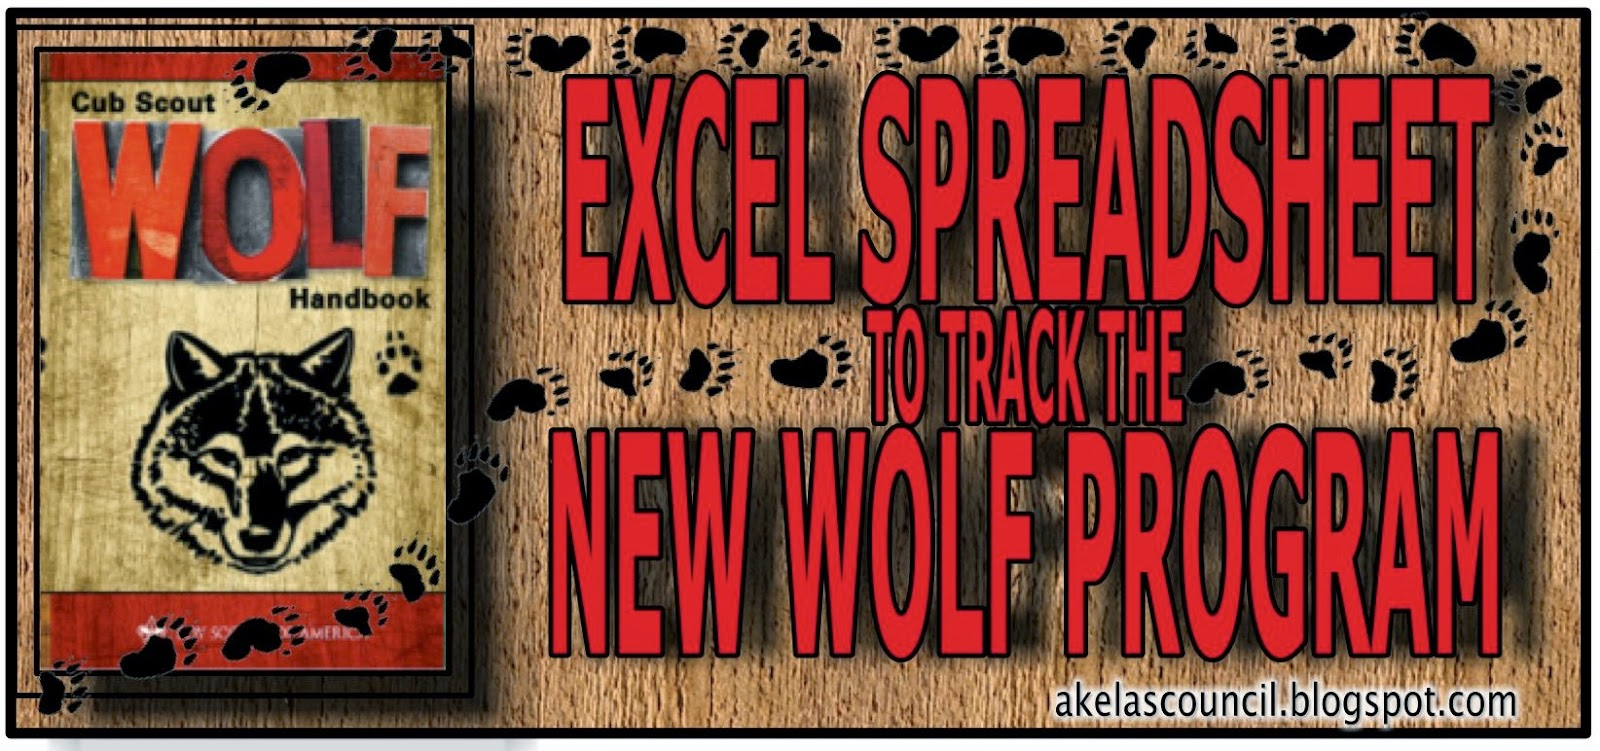 Worksheets Cub Scout Belt Loops Worksheets akelas council cub scout leader training excel advancement spreadsheet to track the wolf den in new program similar trax spreadsheets